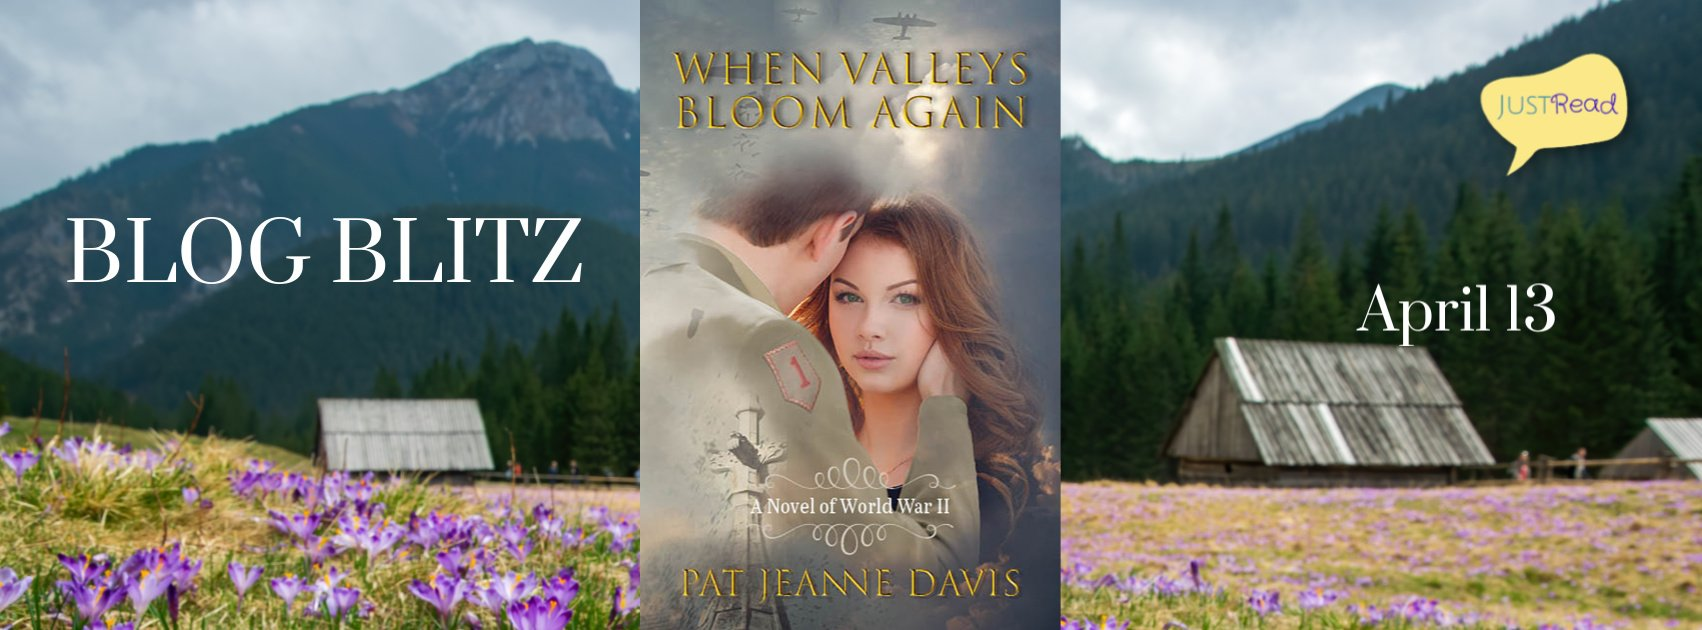 When Valleys Bloom Again JustRead Blog Blitz